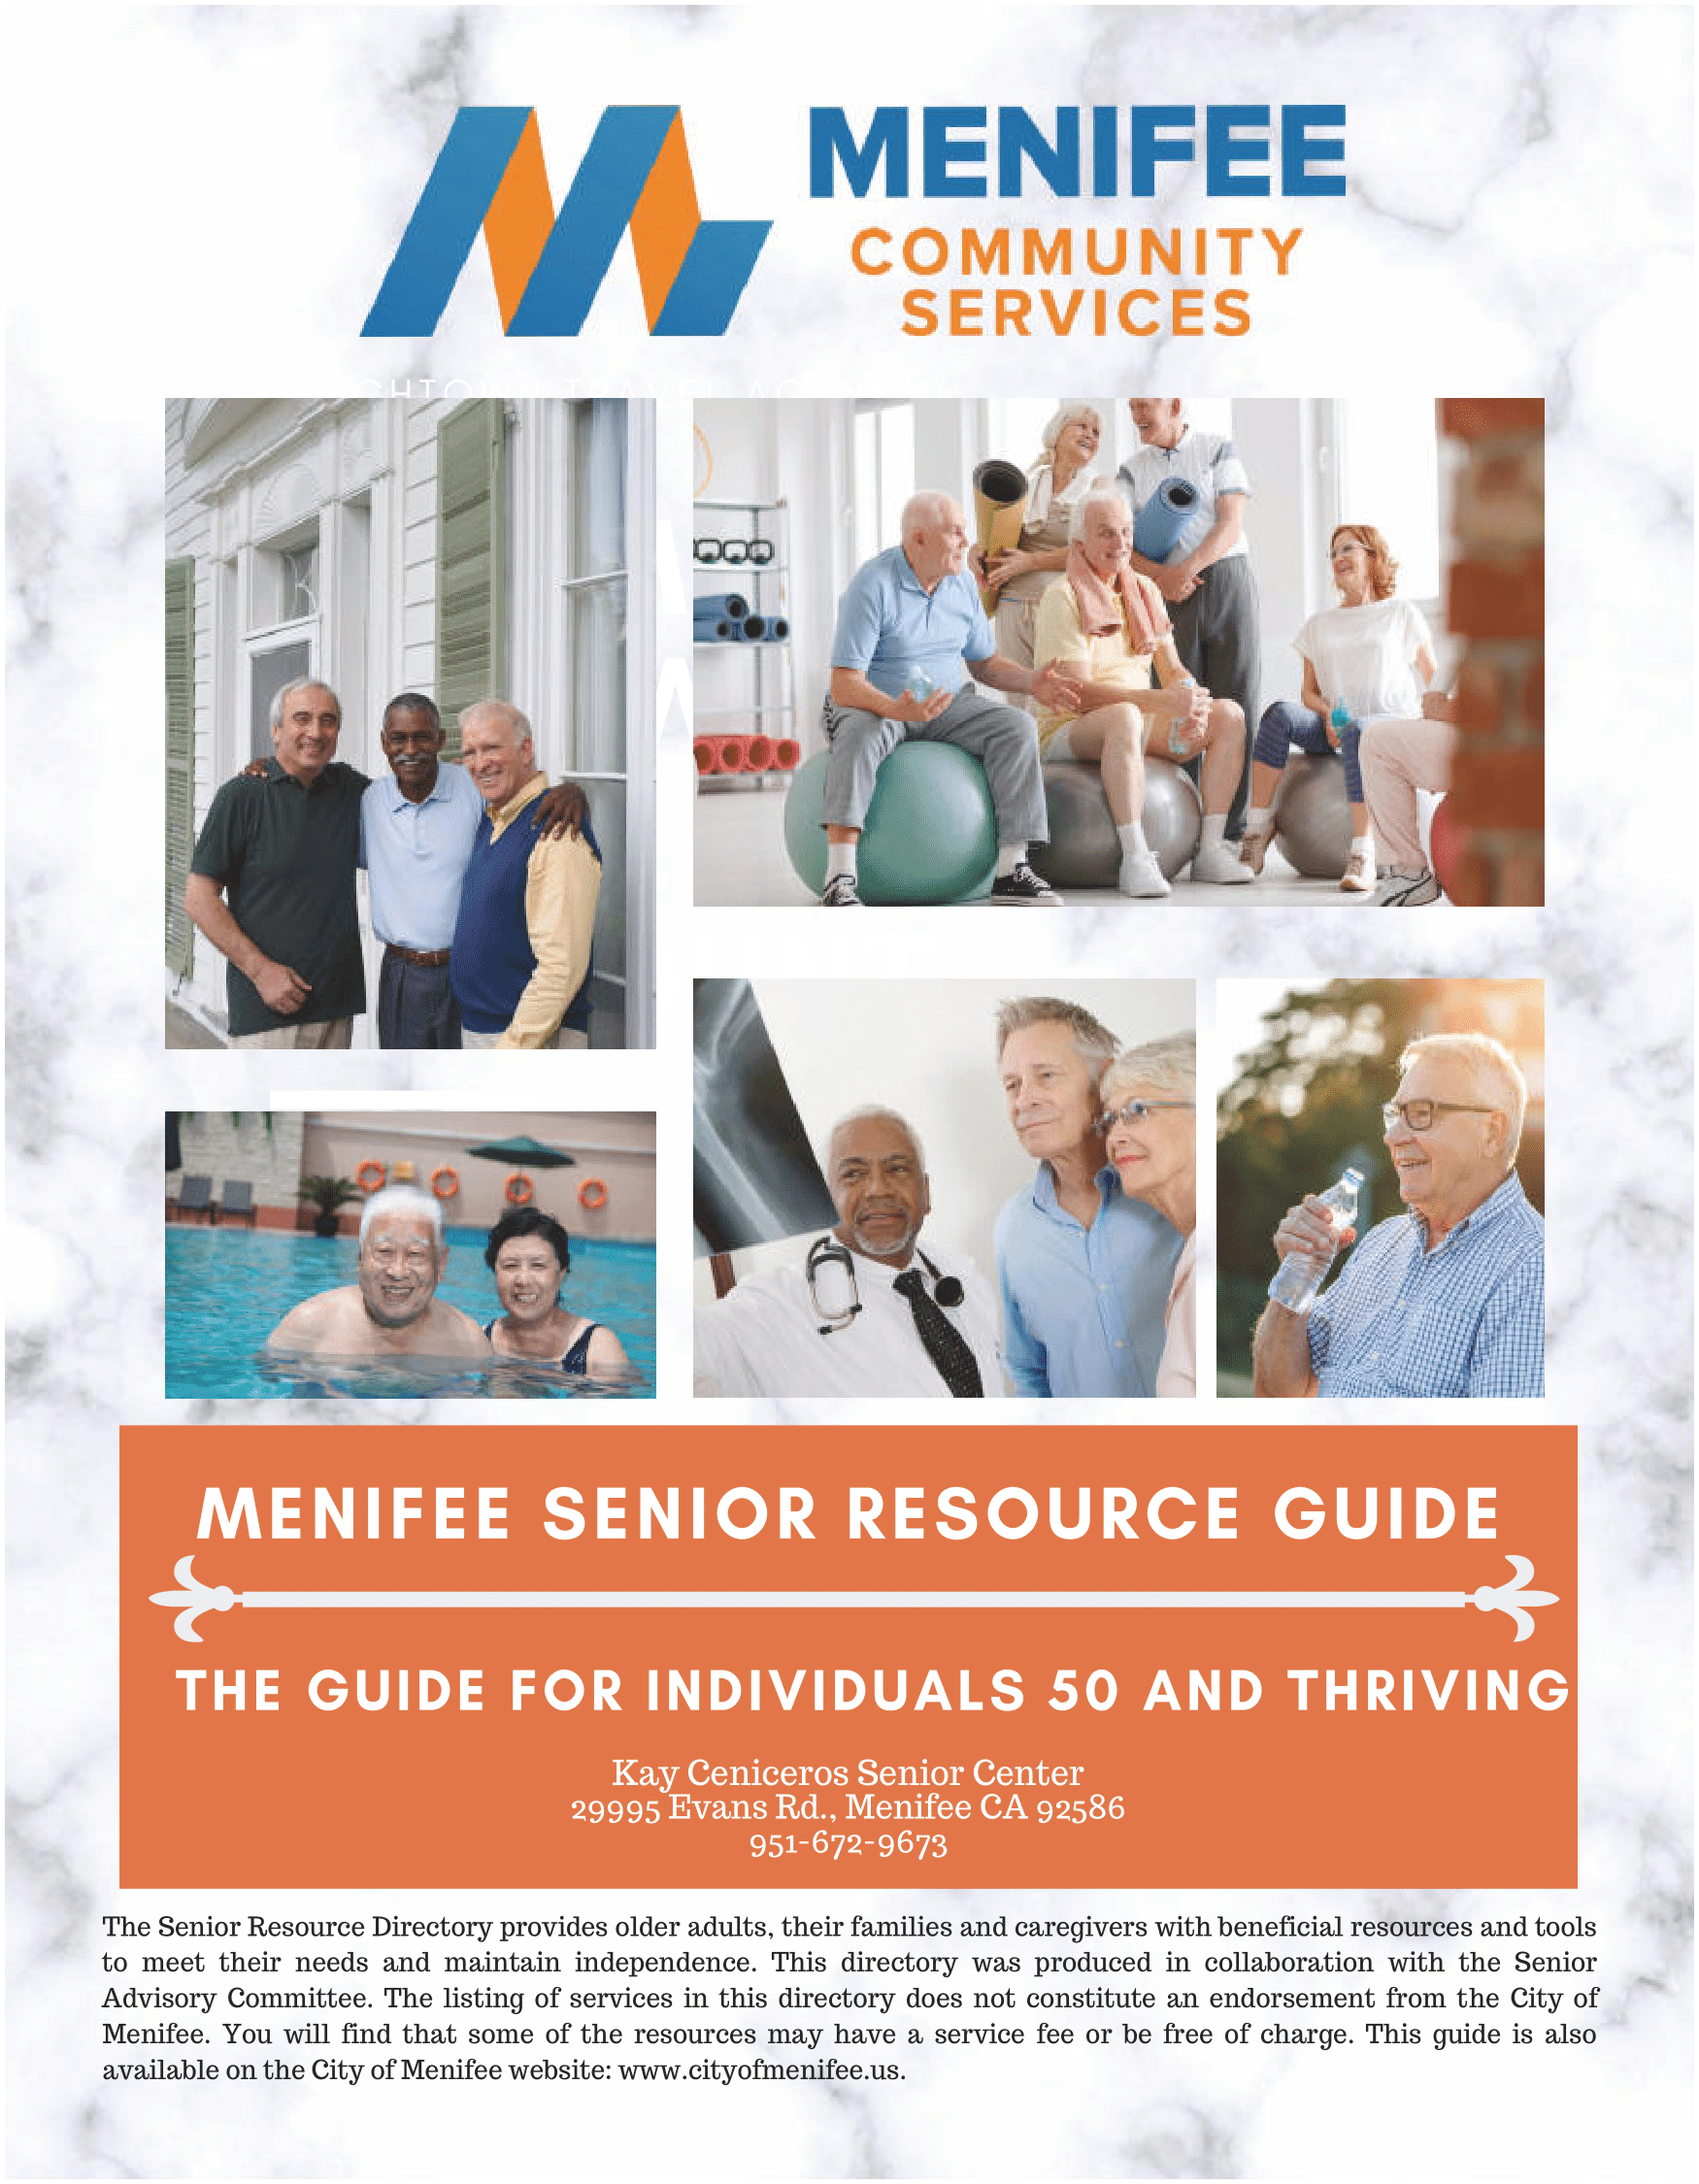 Menifee Senior Resource Directory 2020-Page 1 (A Guide for Individuals 50 and Thriving)